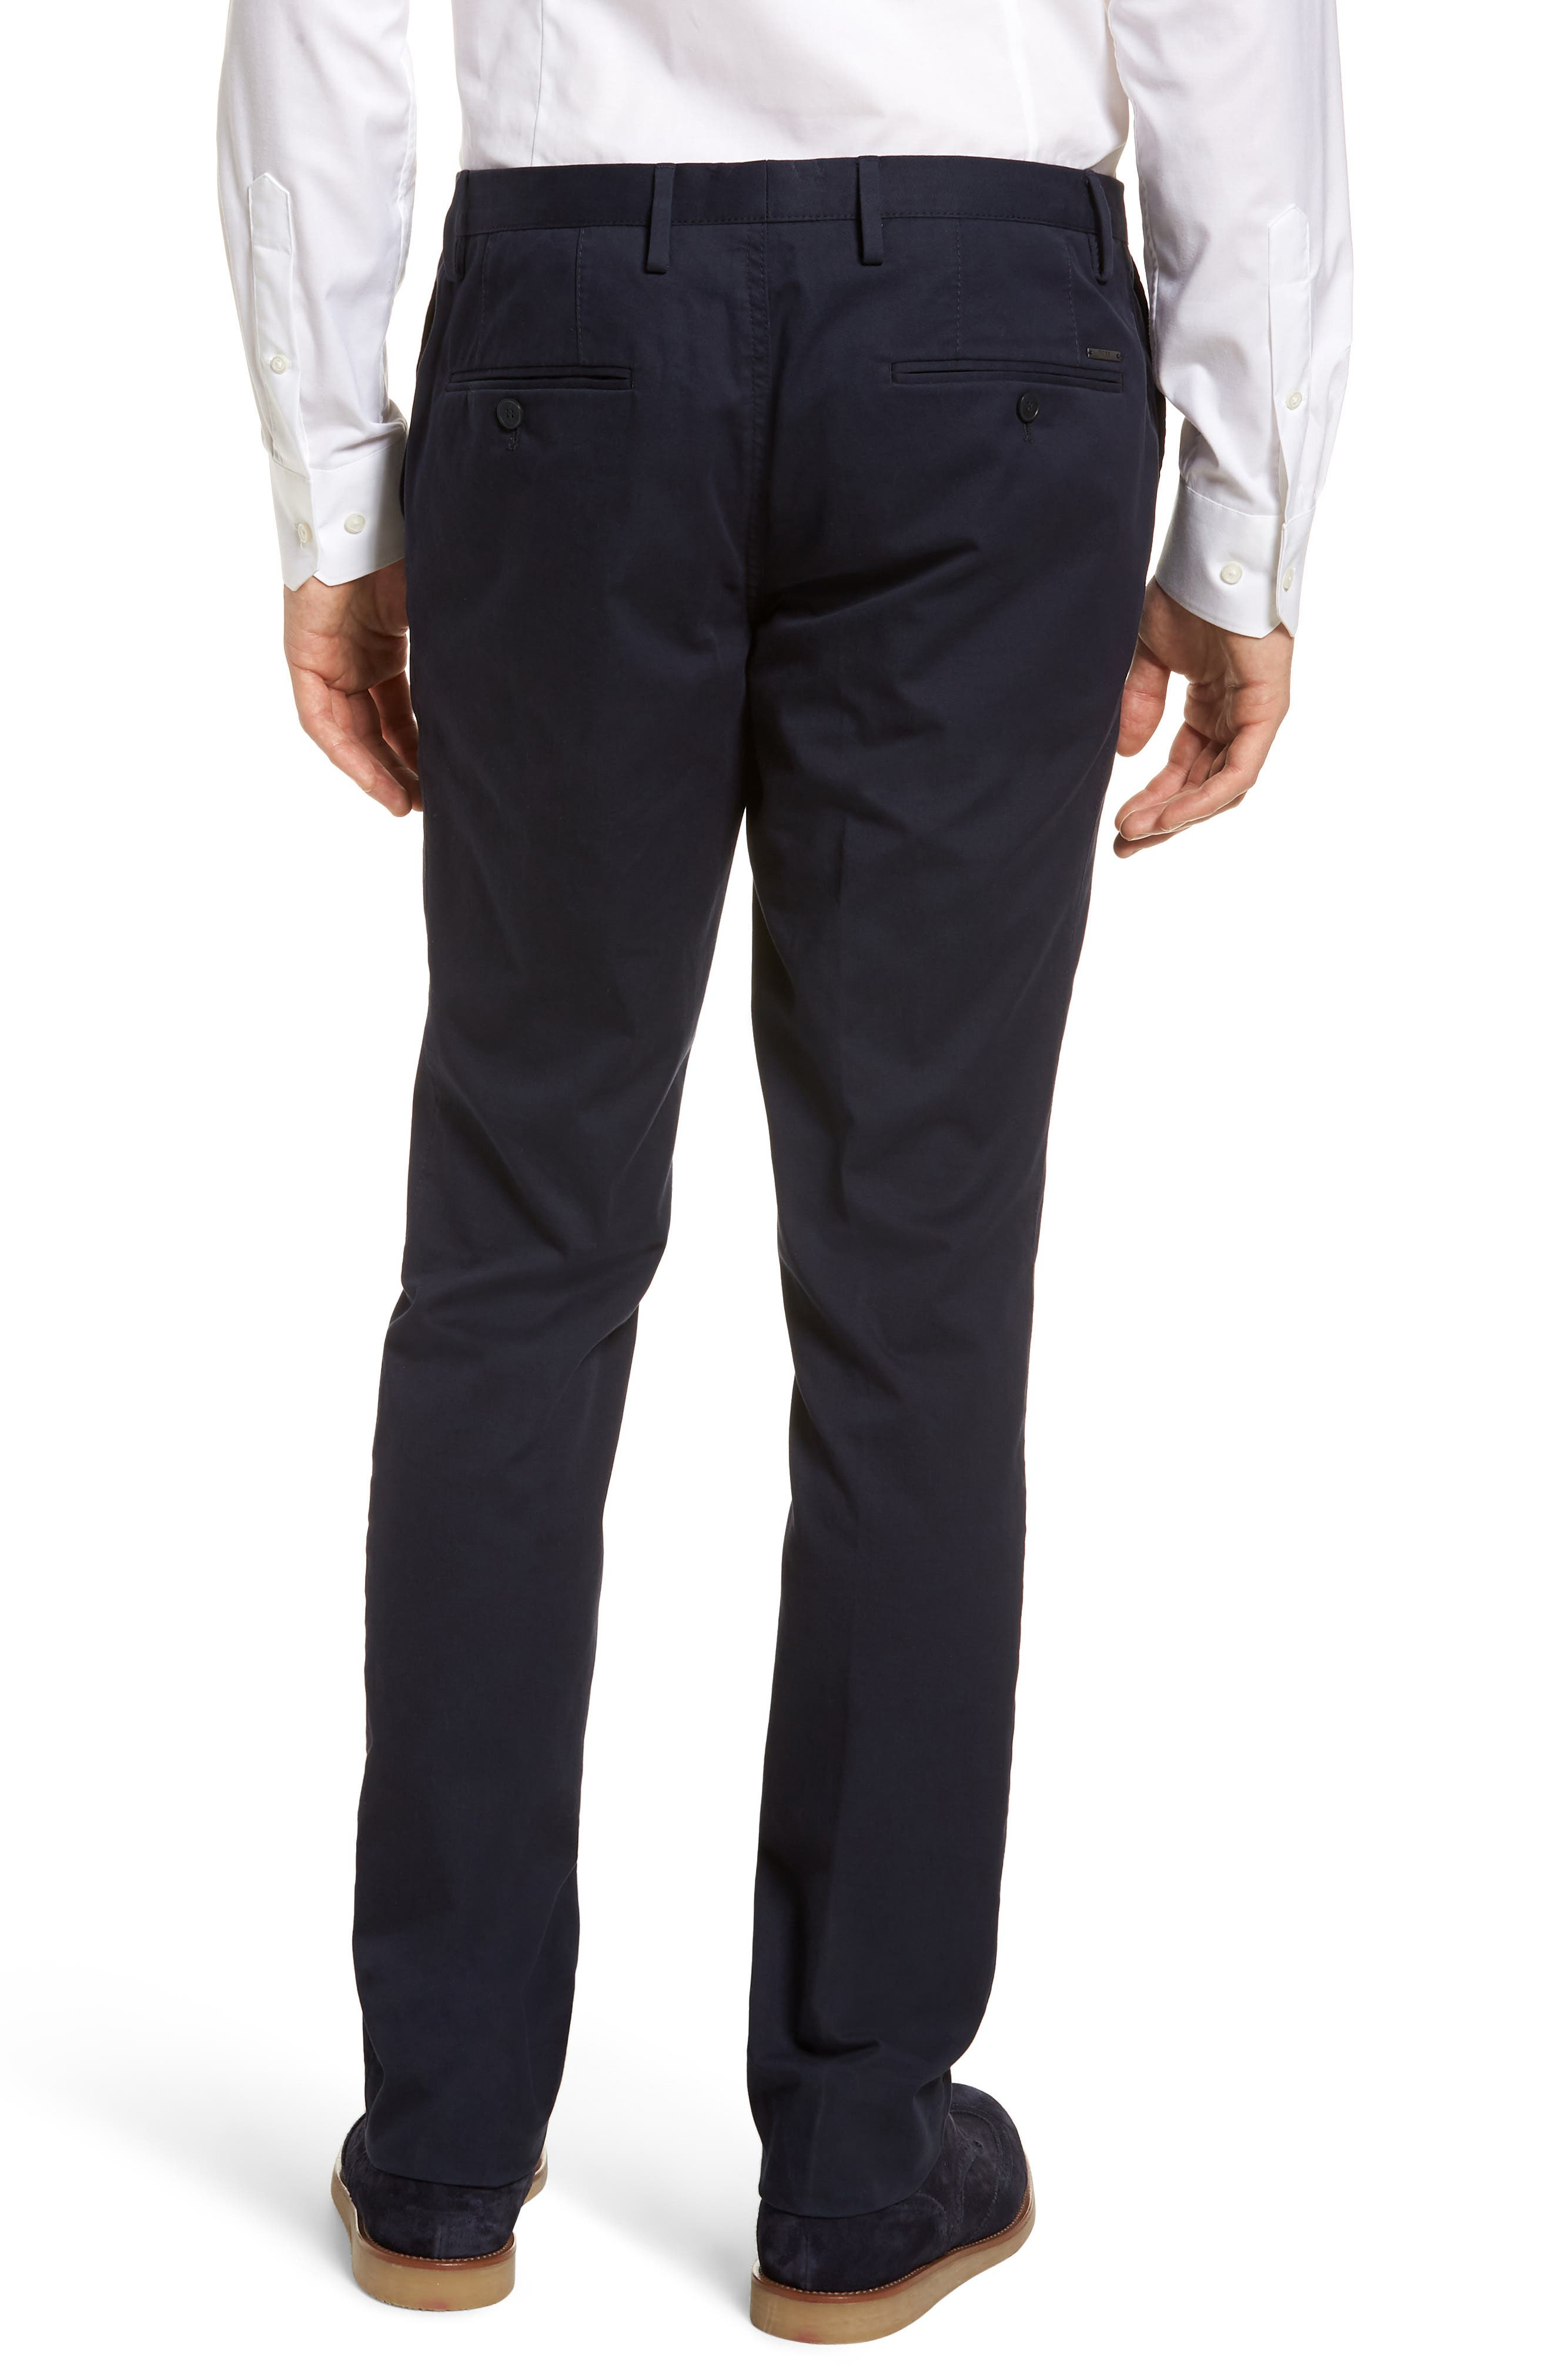 Stanino-W Flat Front Stretch Cotton Trousers,                             Alternate thumbnail 2, color,                             Navy